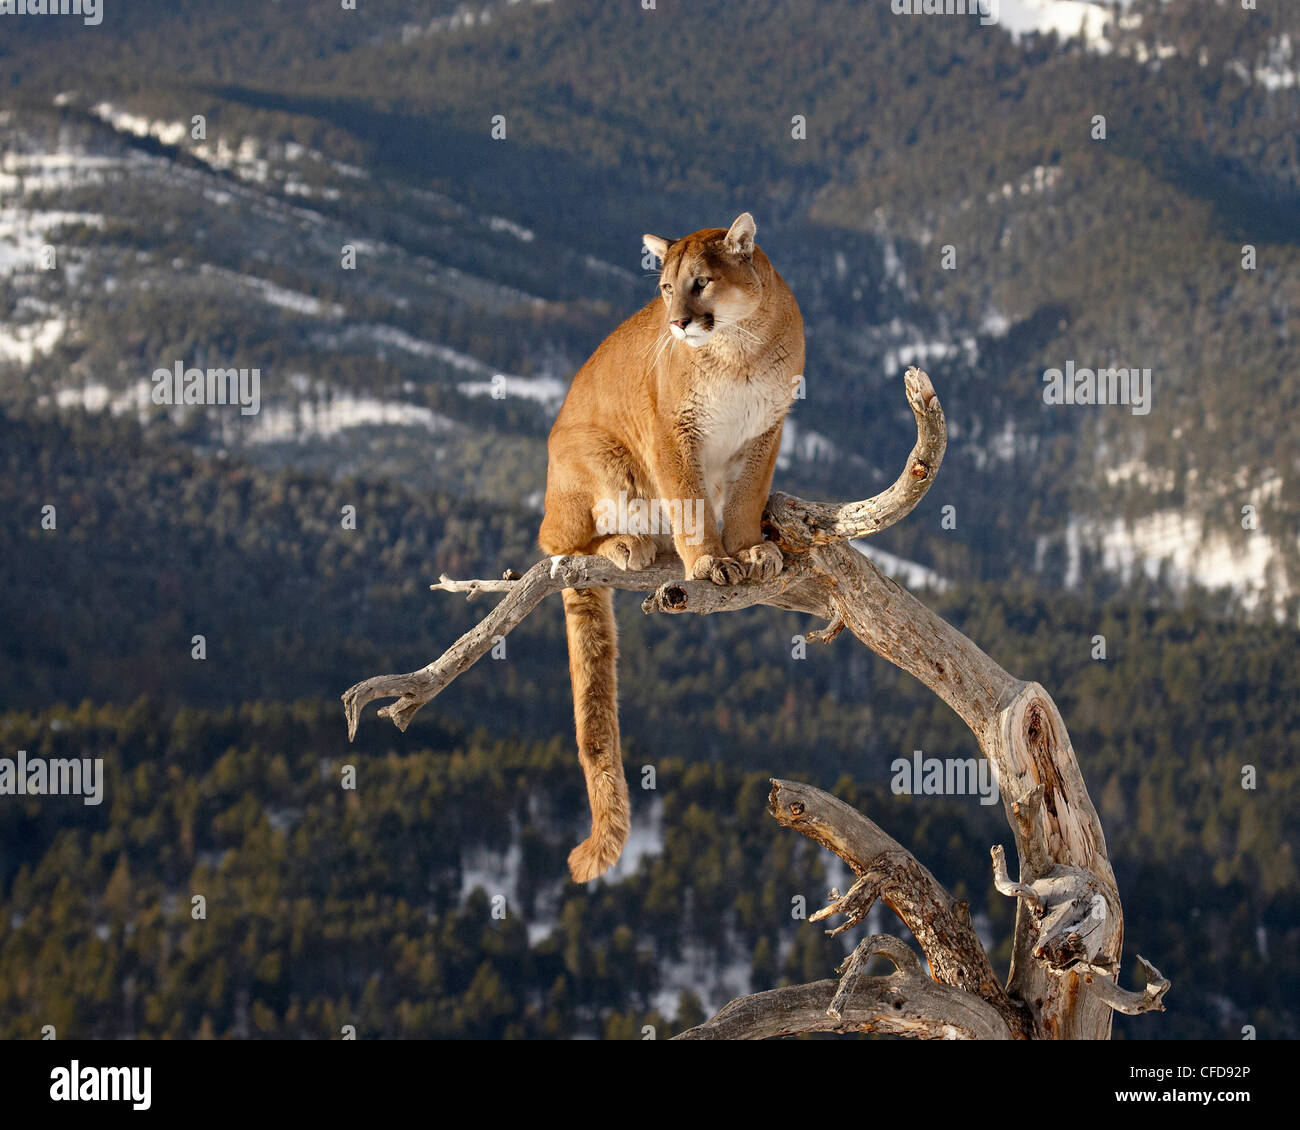 Mountain Lion (Cougar) (Felis concolor) in a tree in the snow, in captivity, near Bozeman, Montana, United States - Stock Image